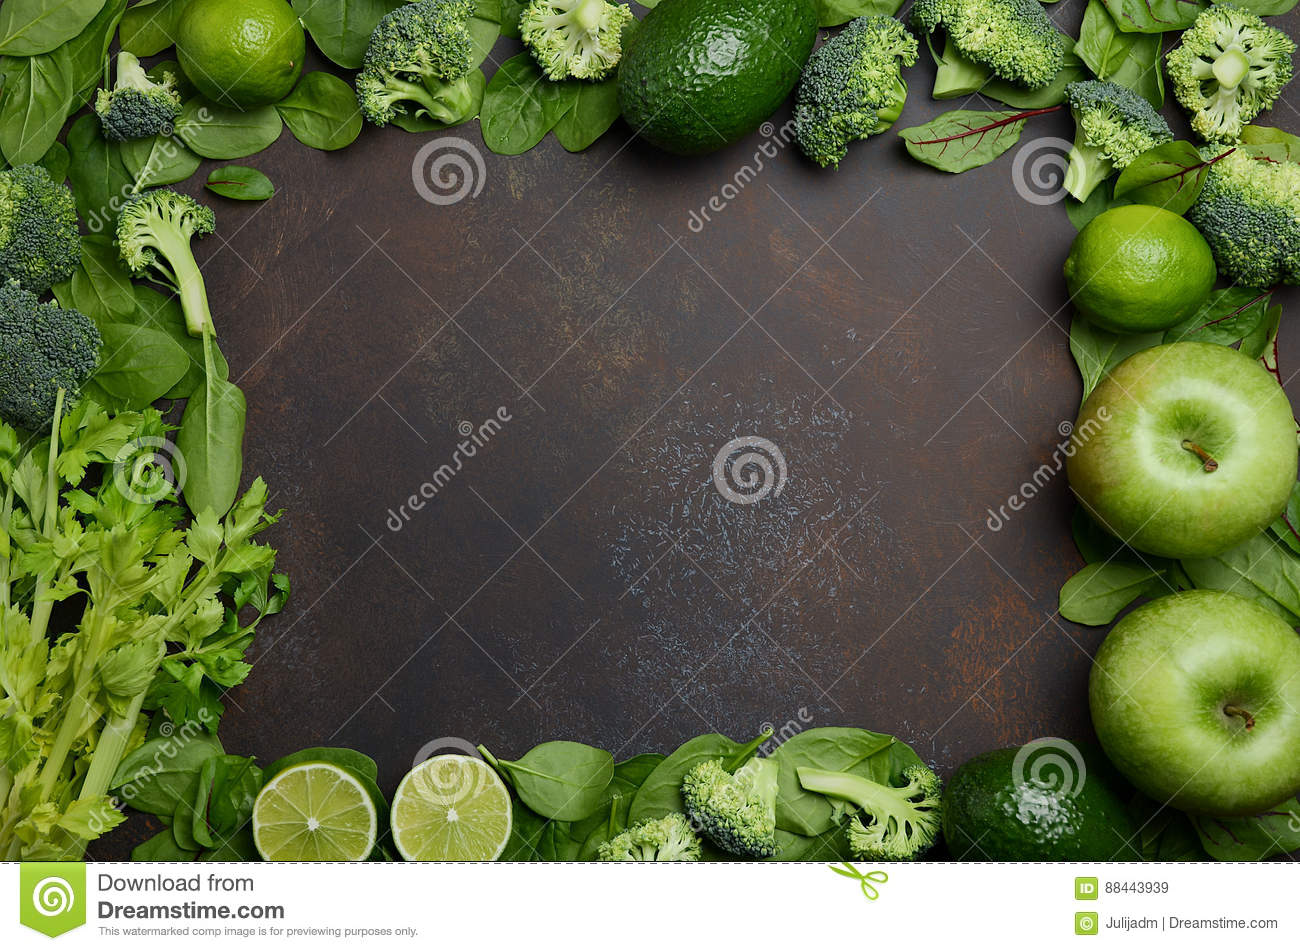 variety of green fruits and vegetables on a dark concrete stone